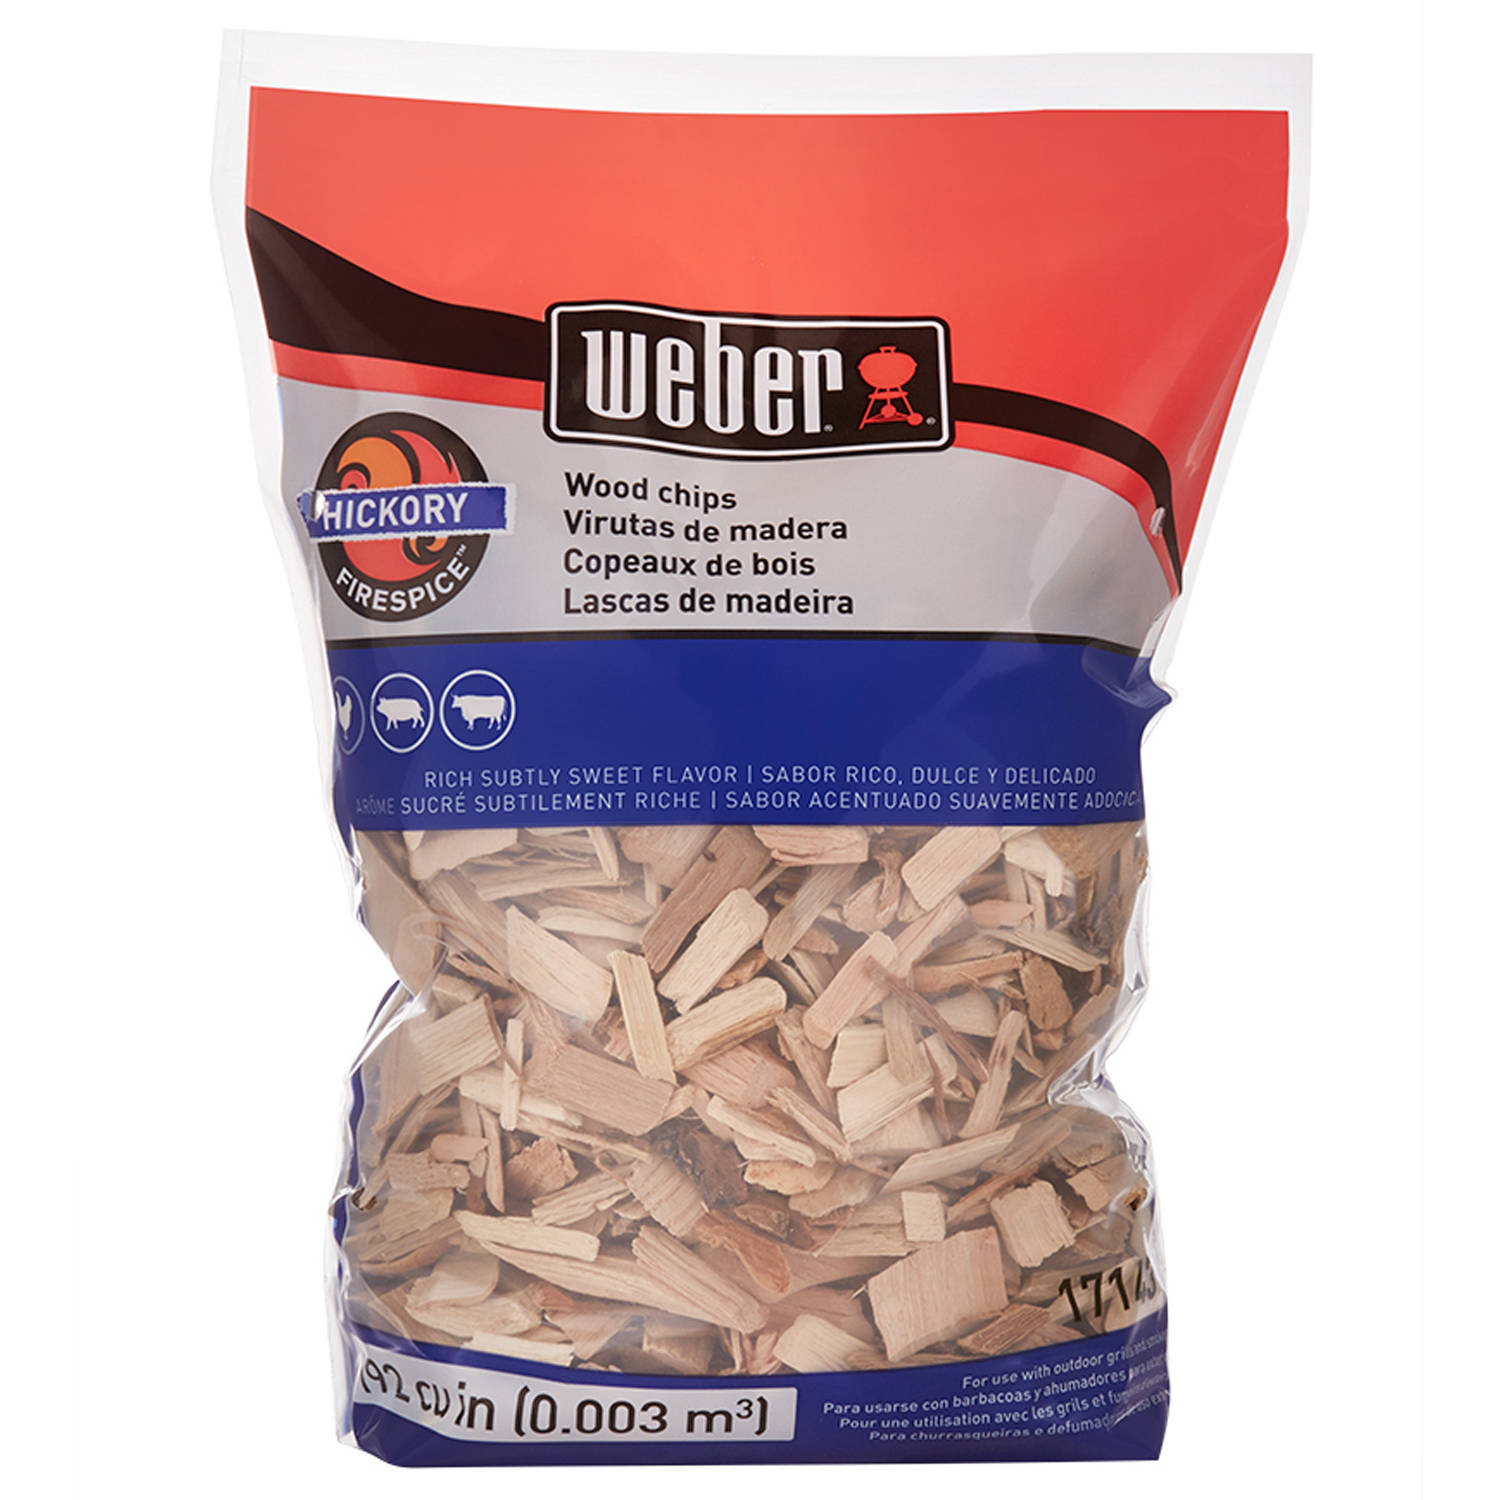 Weber Hickory Wood Chips, 192 Cu. In. bag